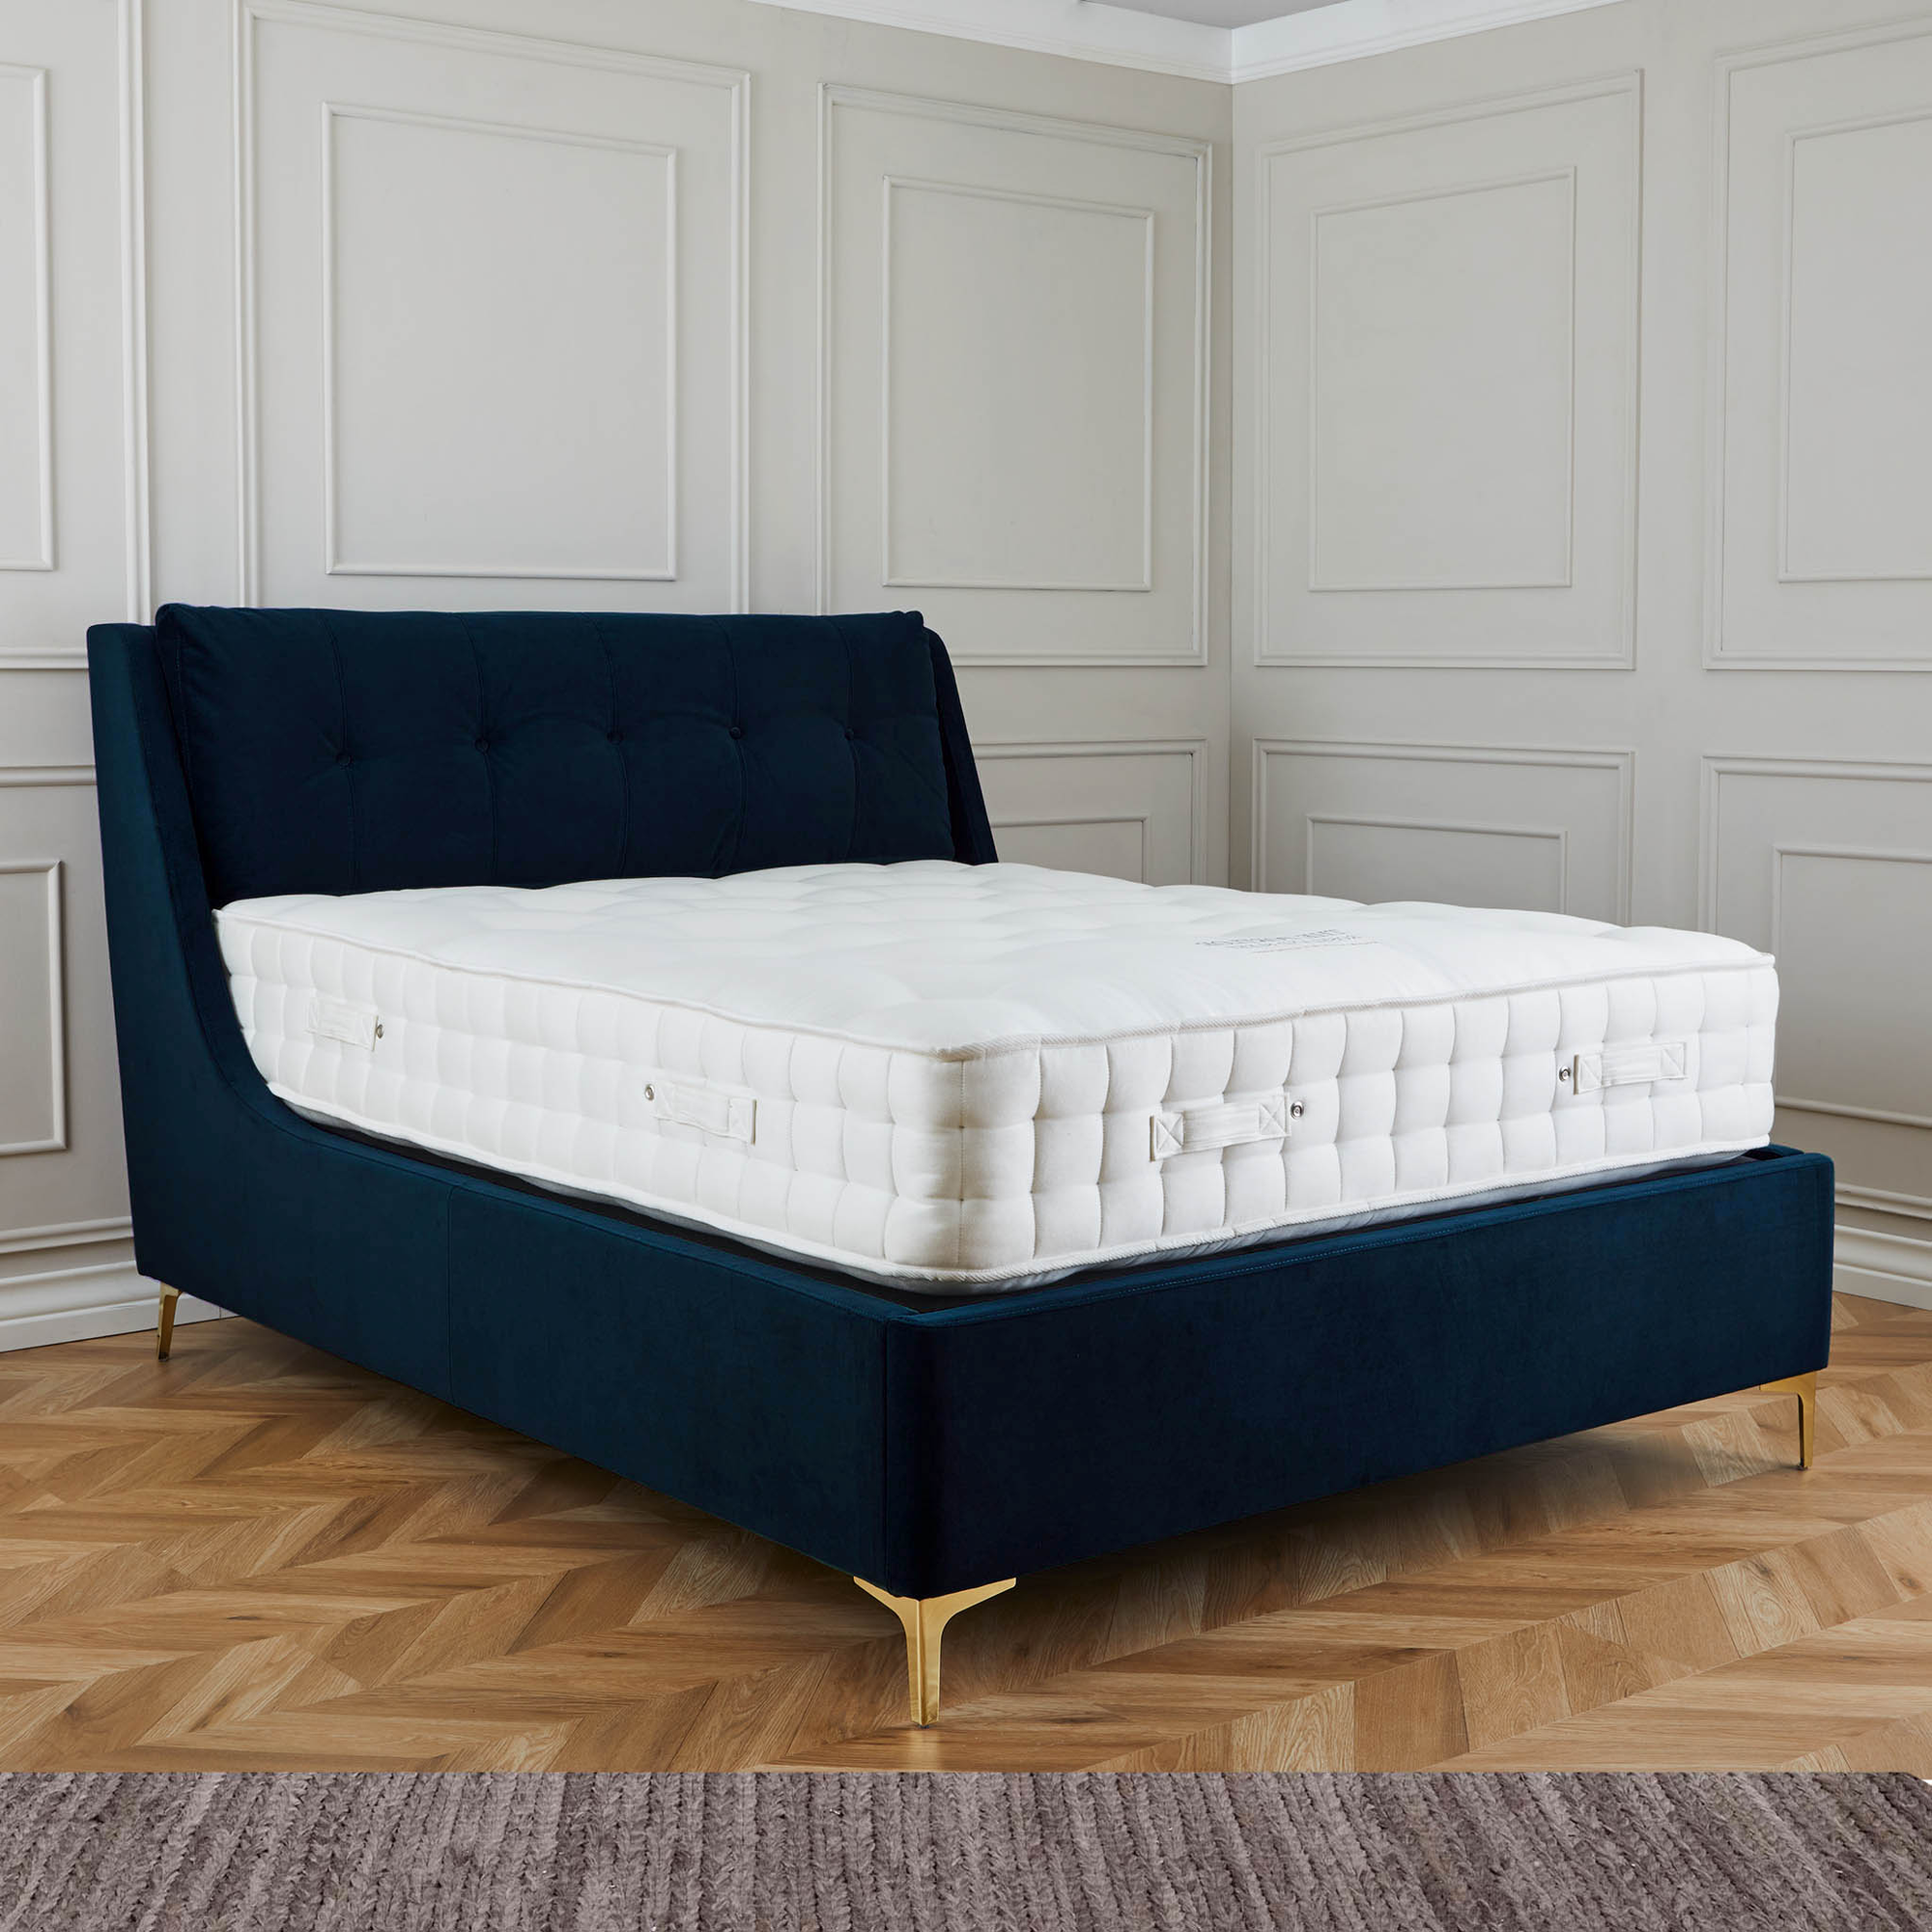 Beds-Roseland-Furniture